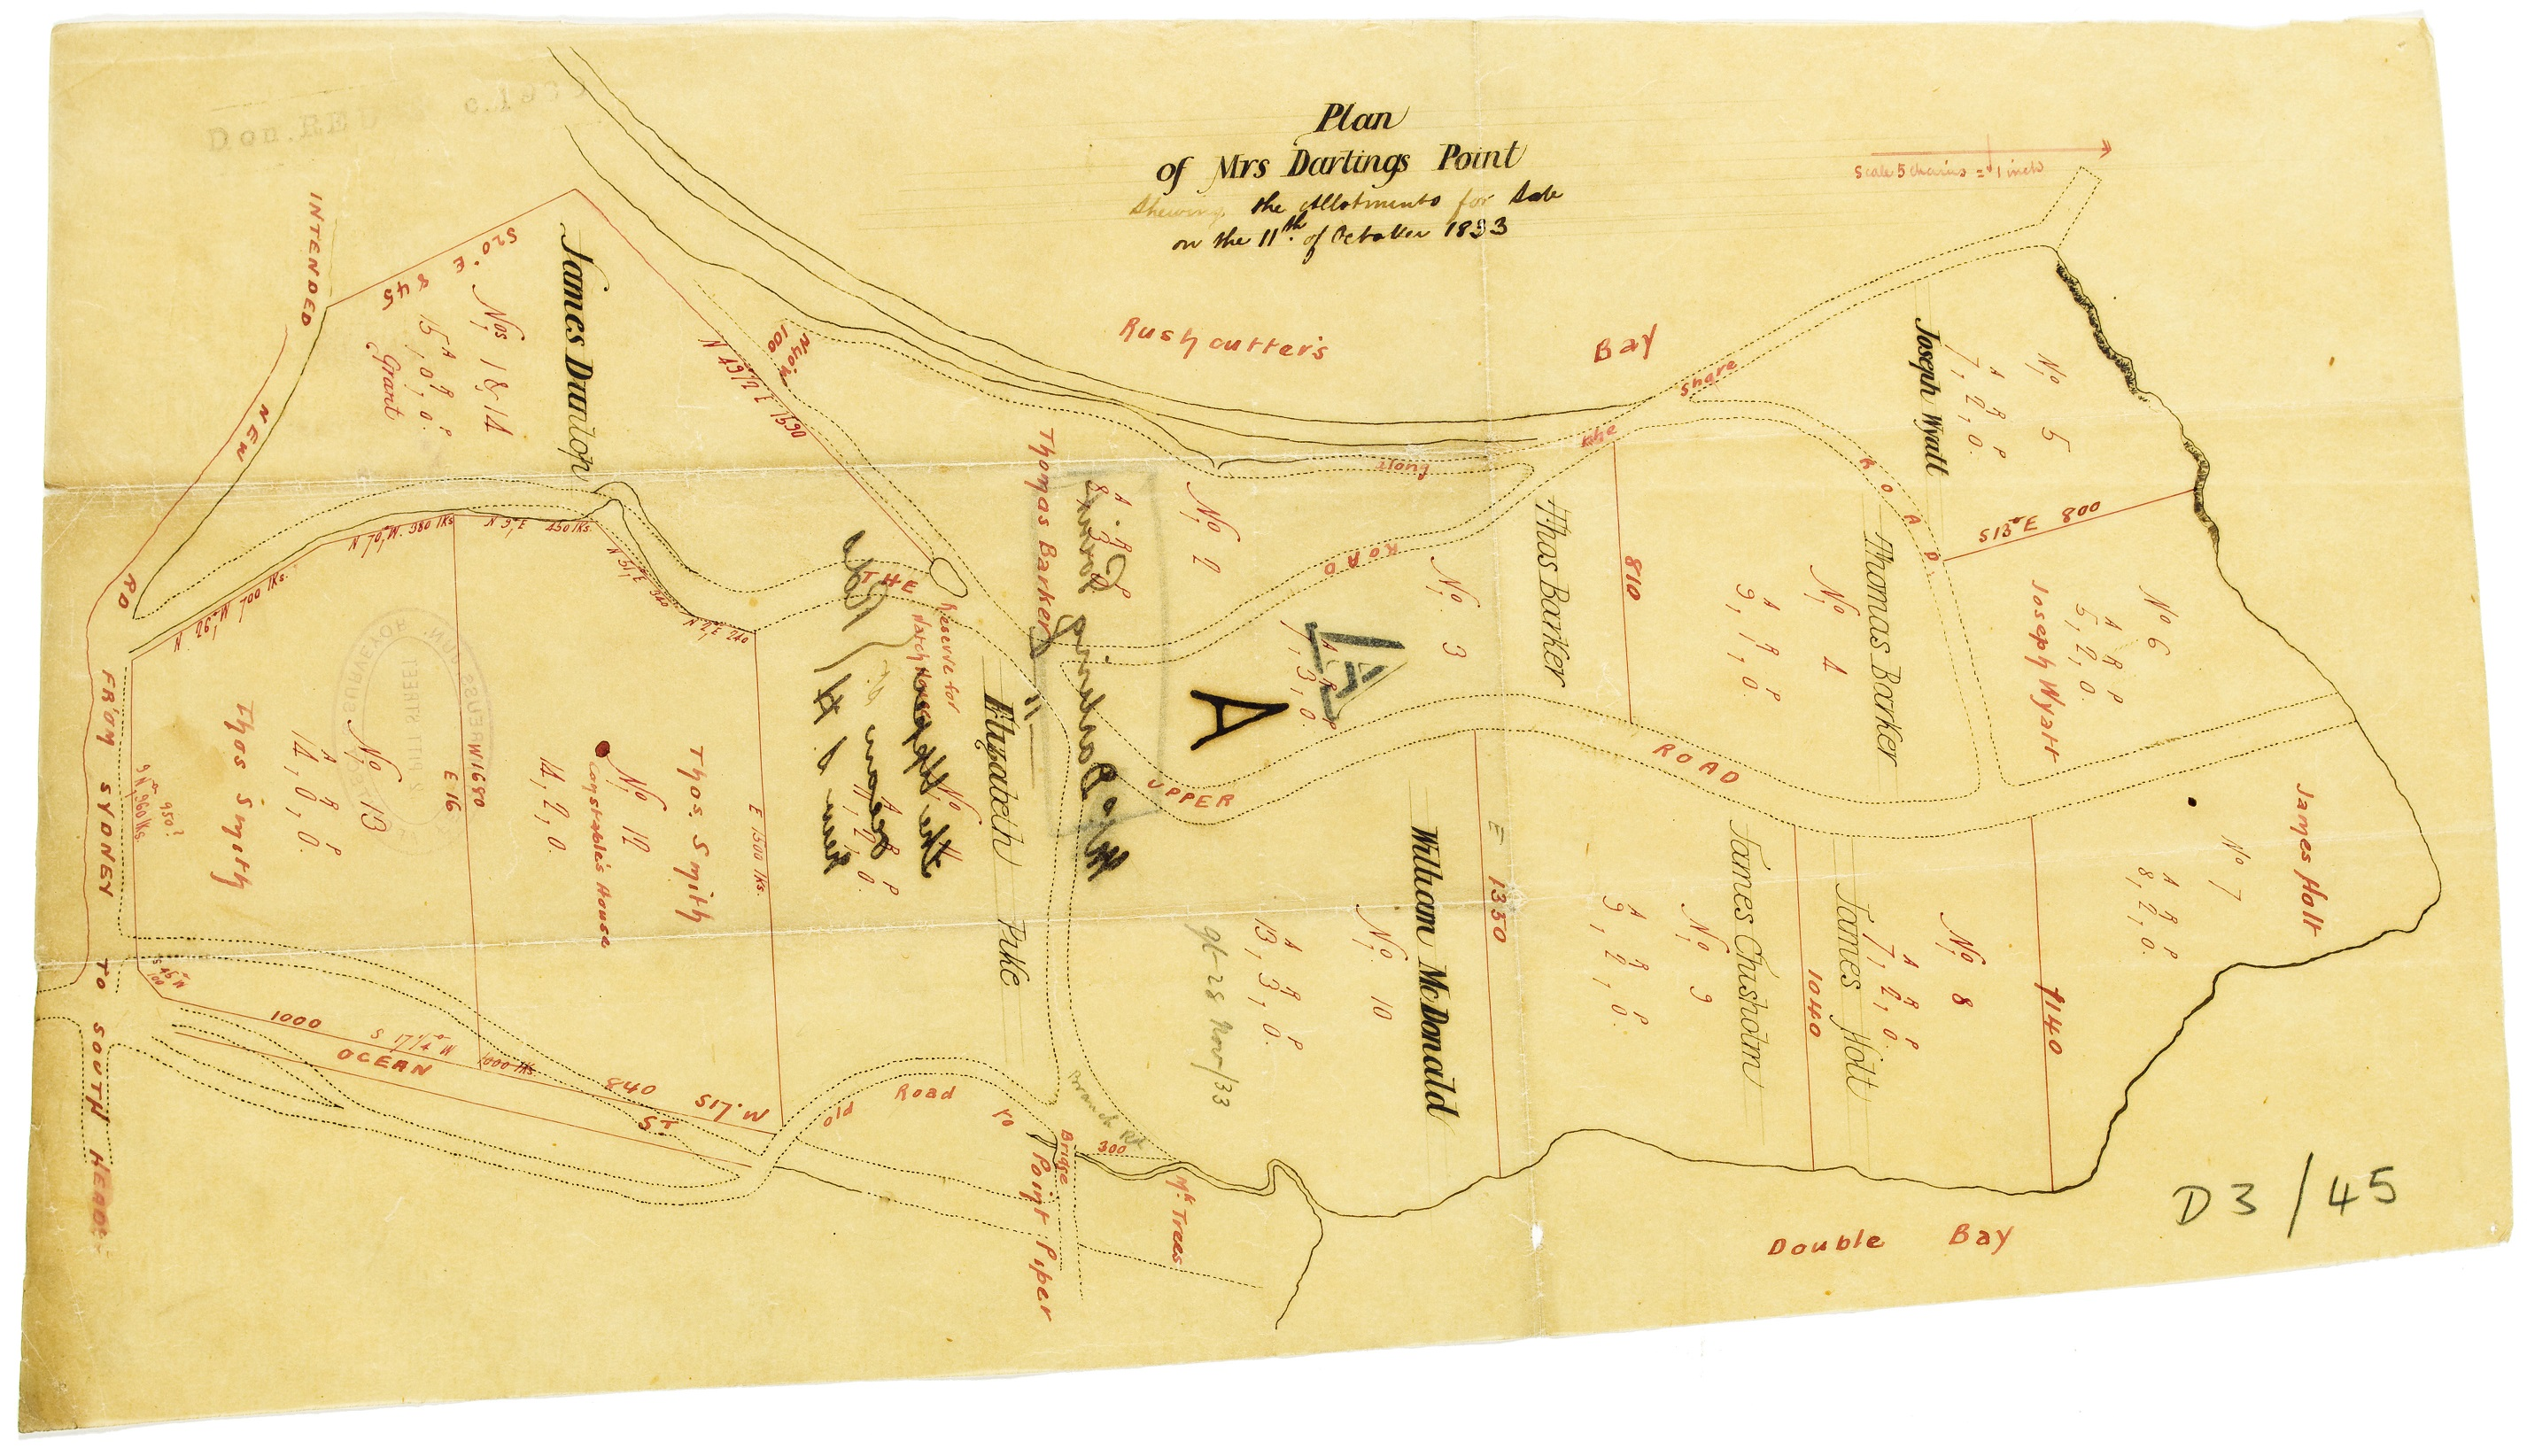 plan_for_mrs_darlings_point_shewing_the_allotments_for_sale.jpg